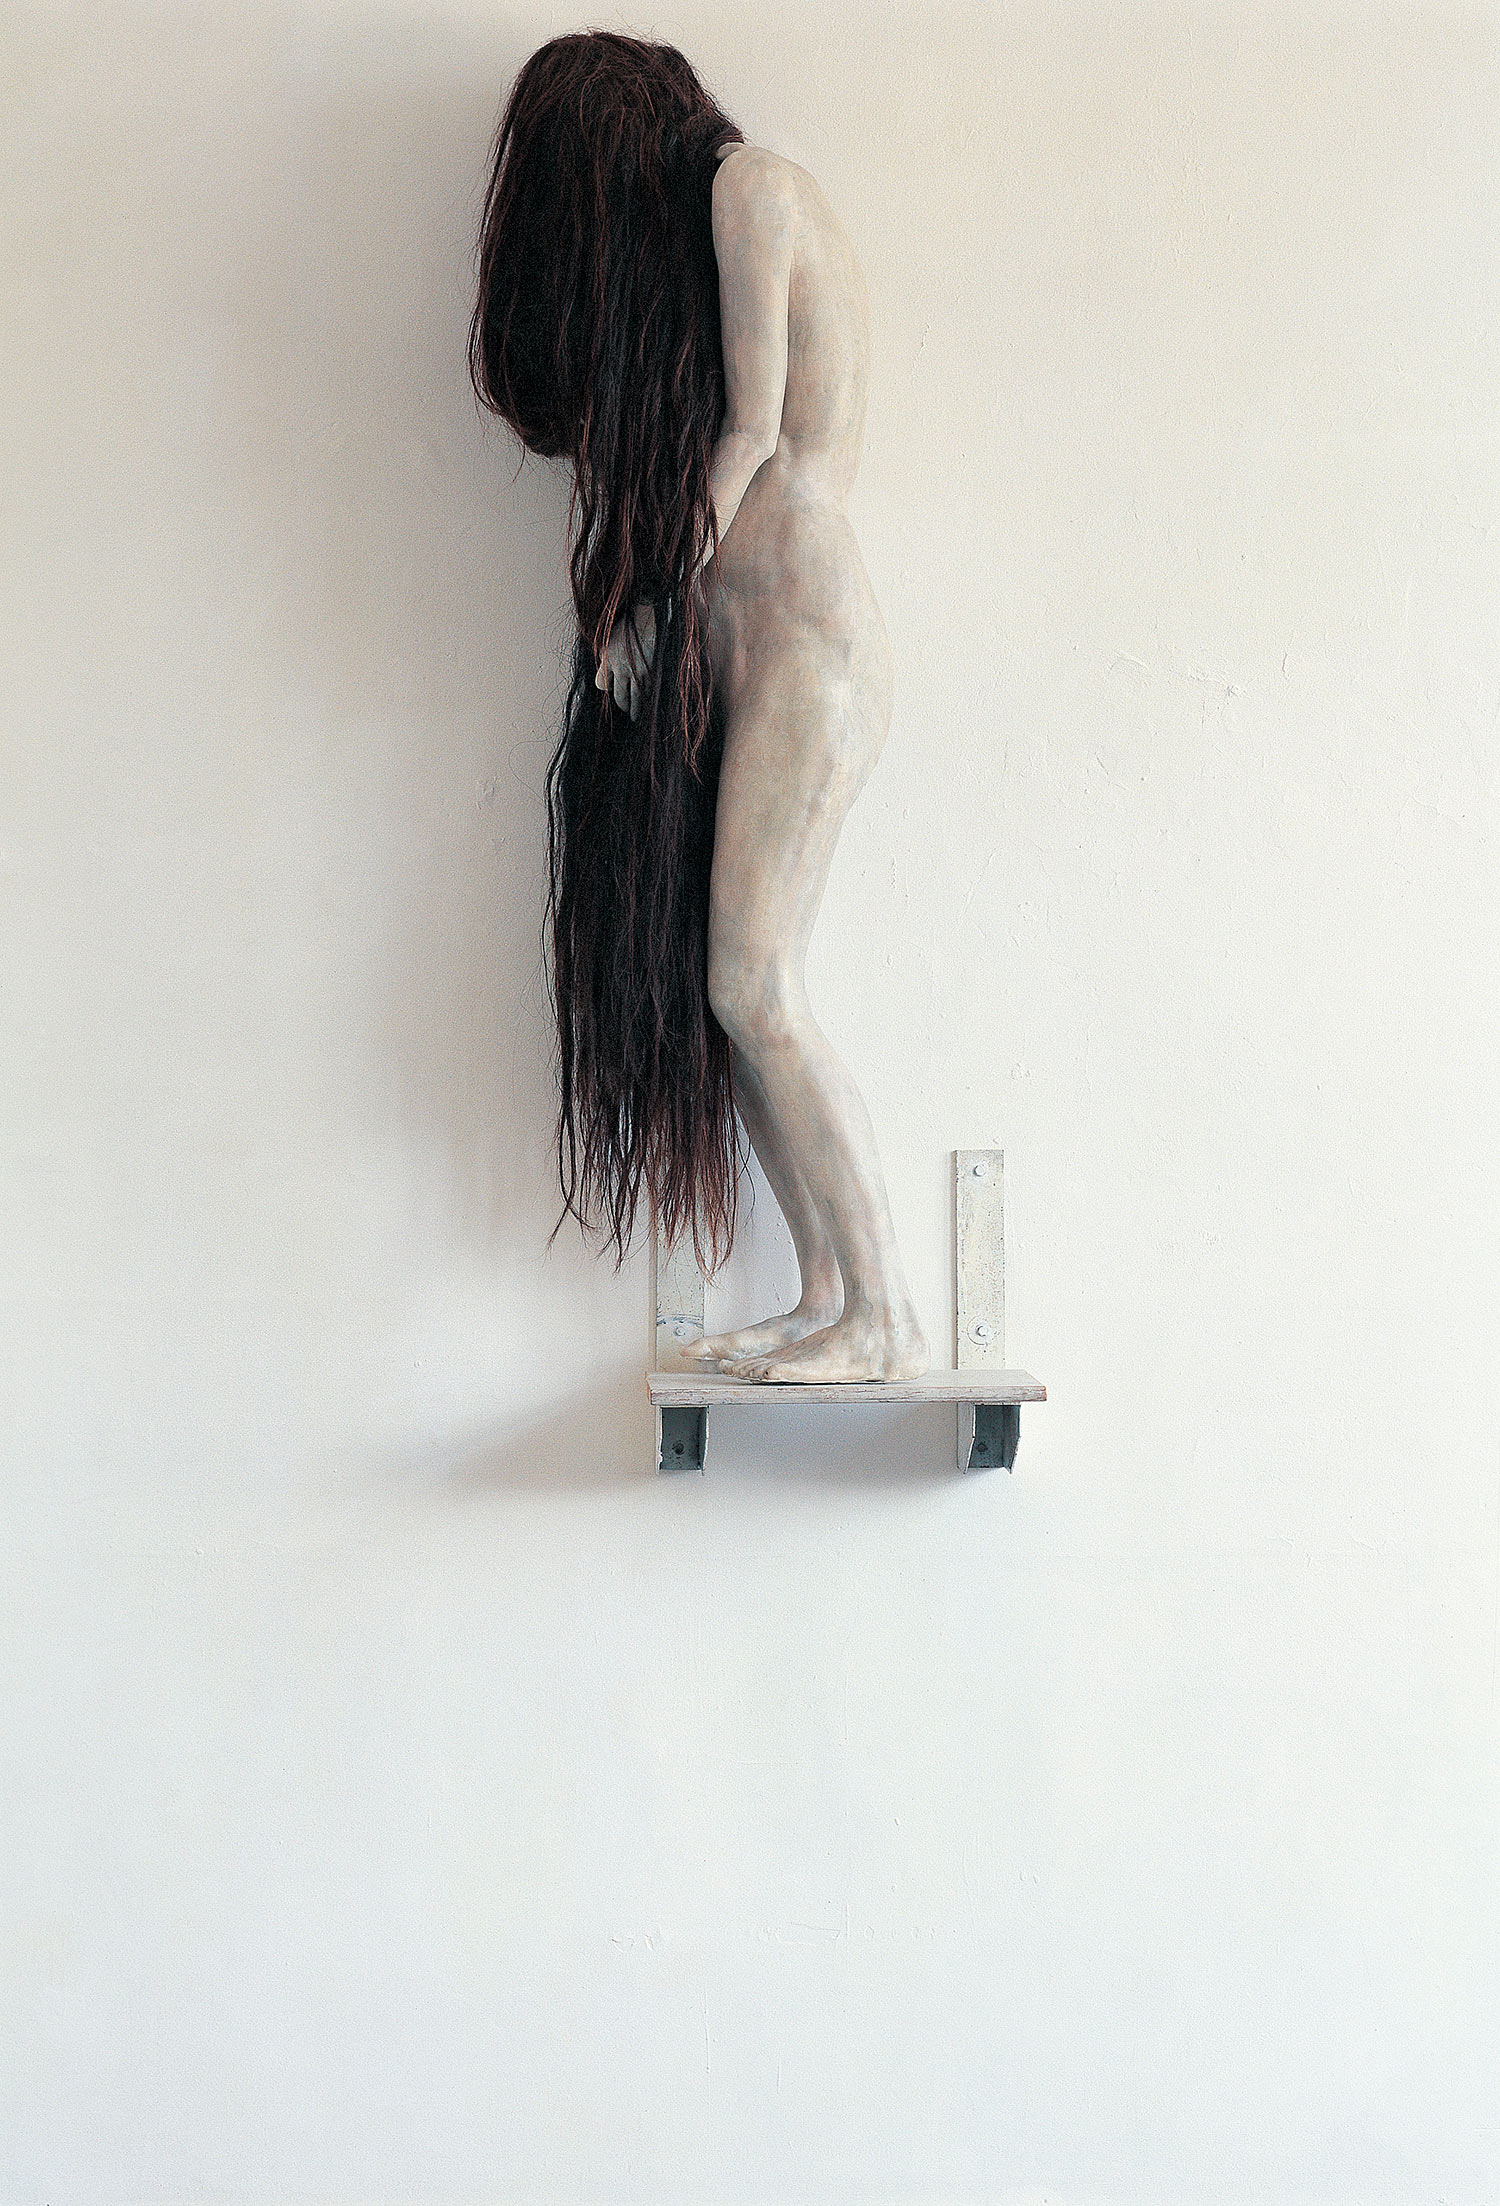 Berlinde de Bruyckere - long-haired woman on ledge, sculpture